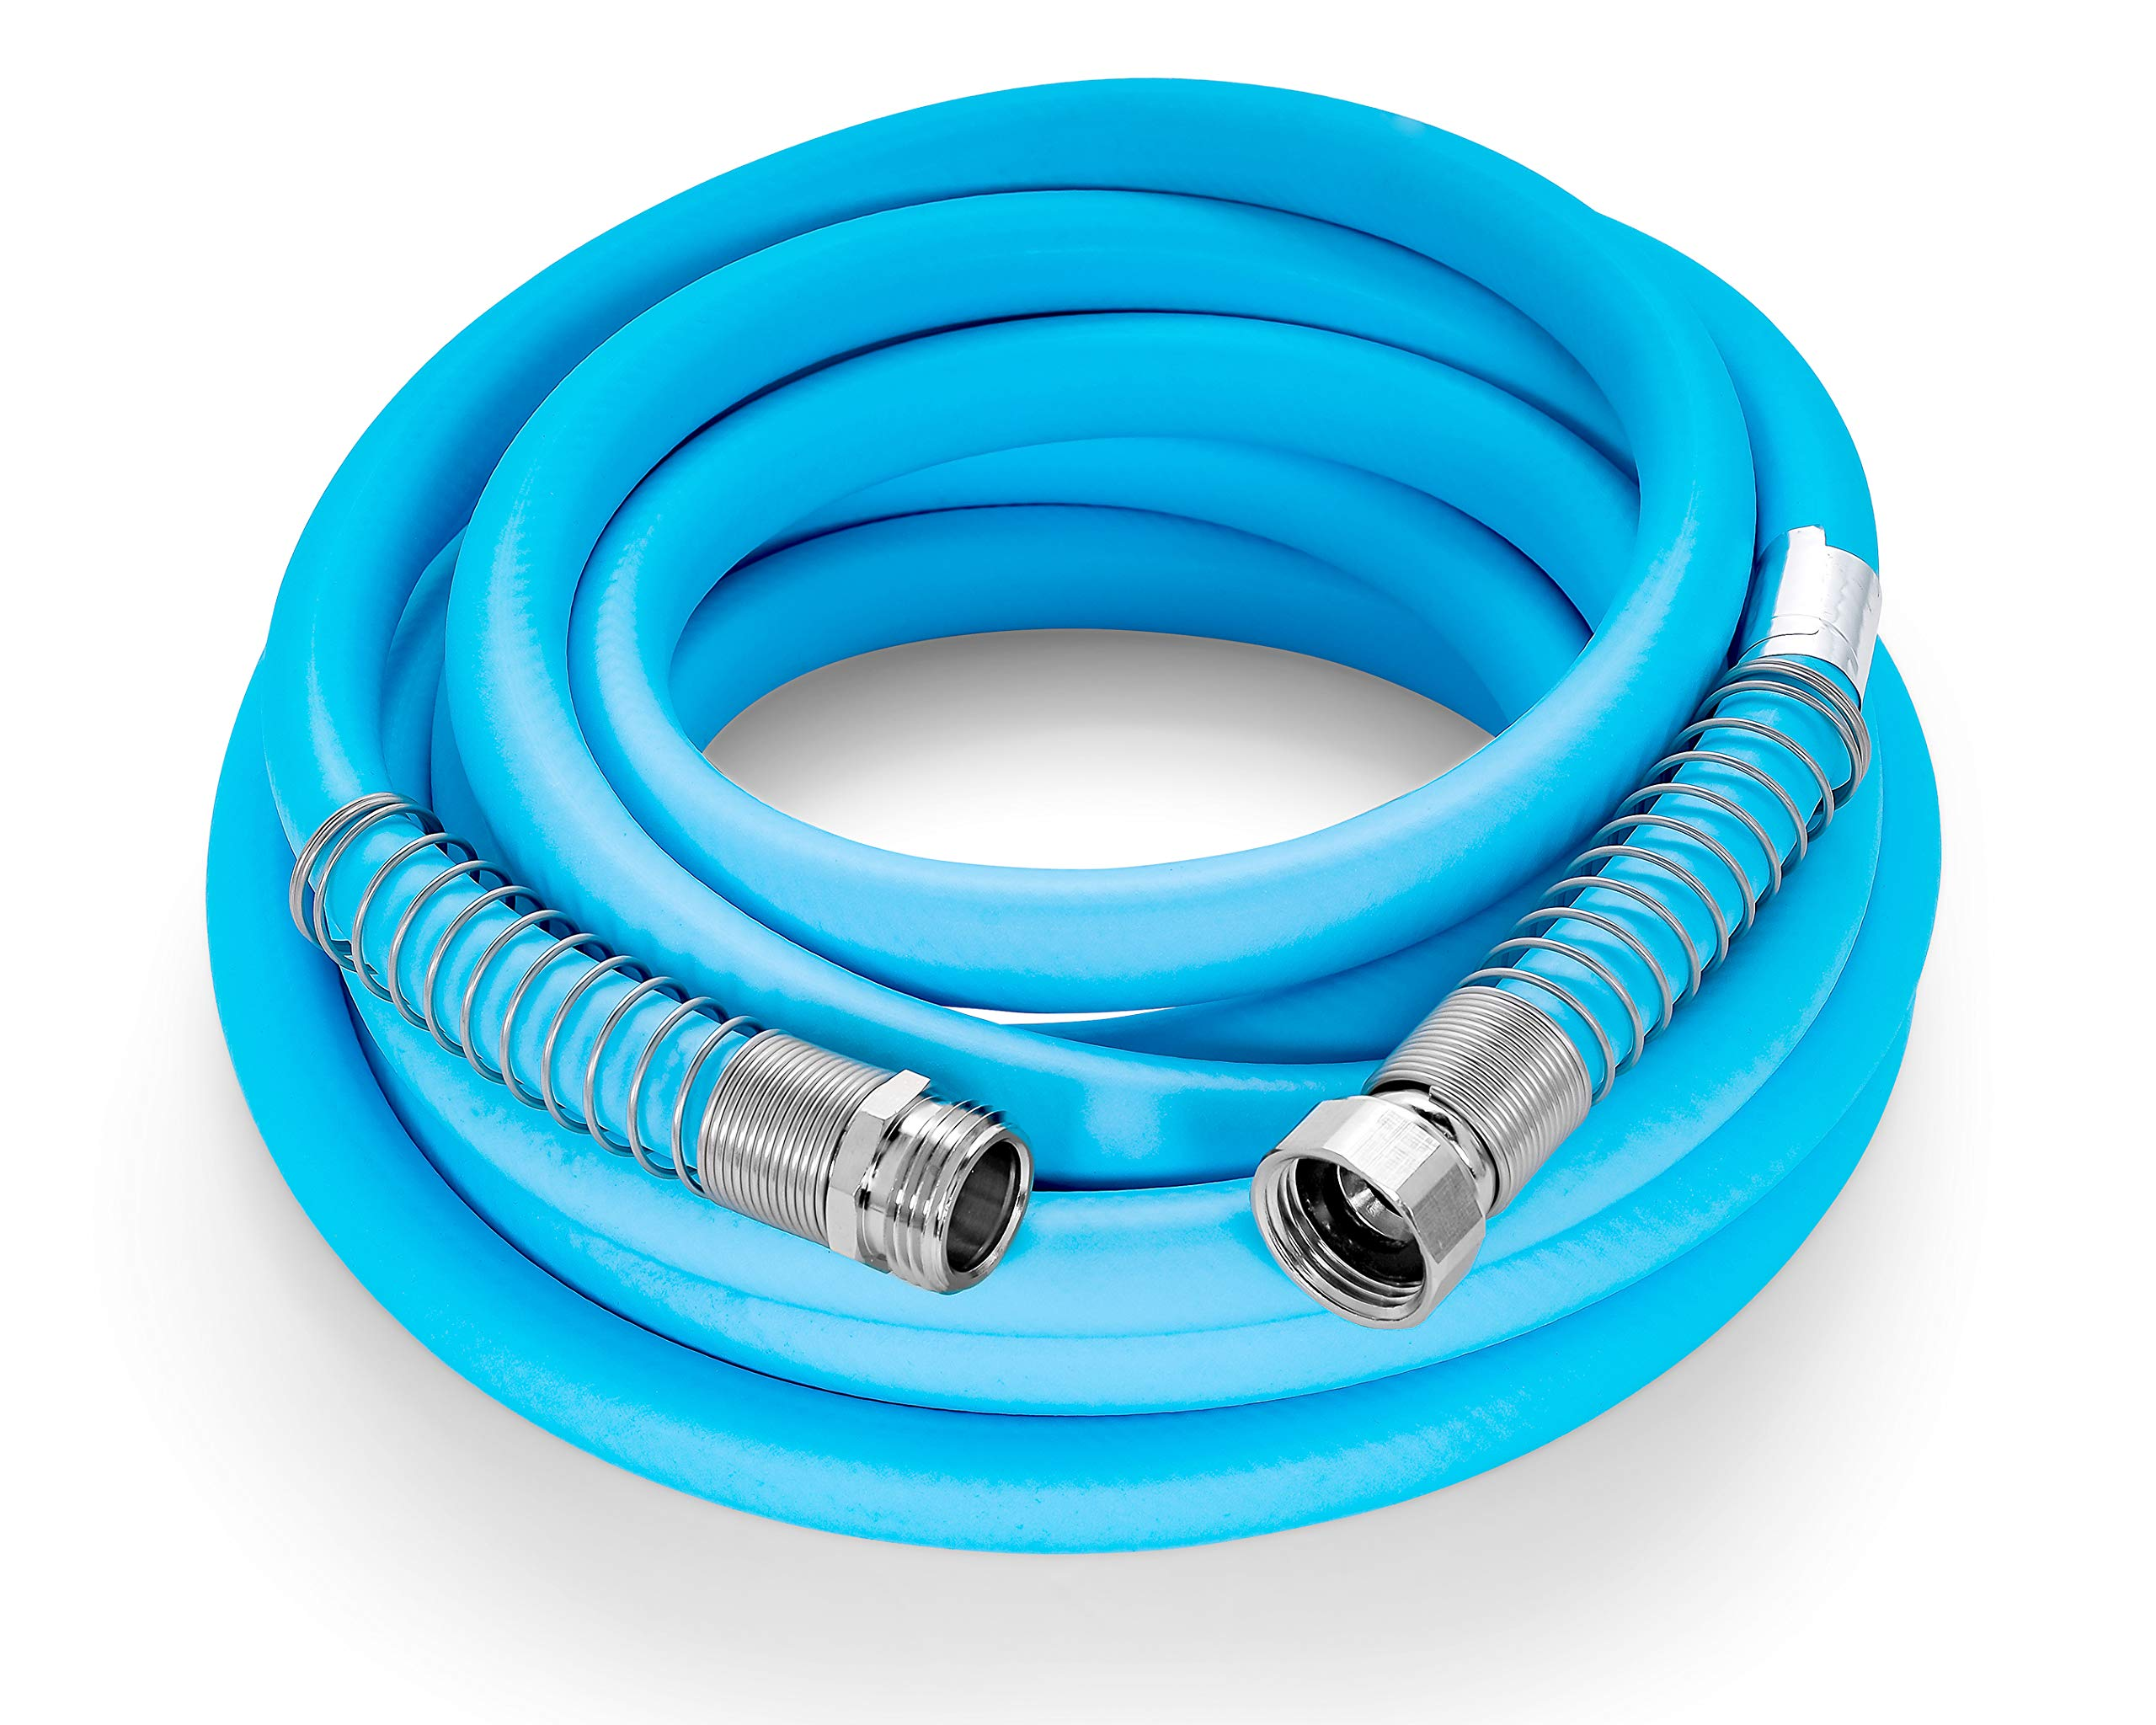 Camco EvoFlex 25-Foot Hose | 5/8-inch Diameter | Designed for Recreational Use | Drinking Water Safe | Super Flexible (22594) by Camco